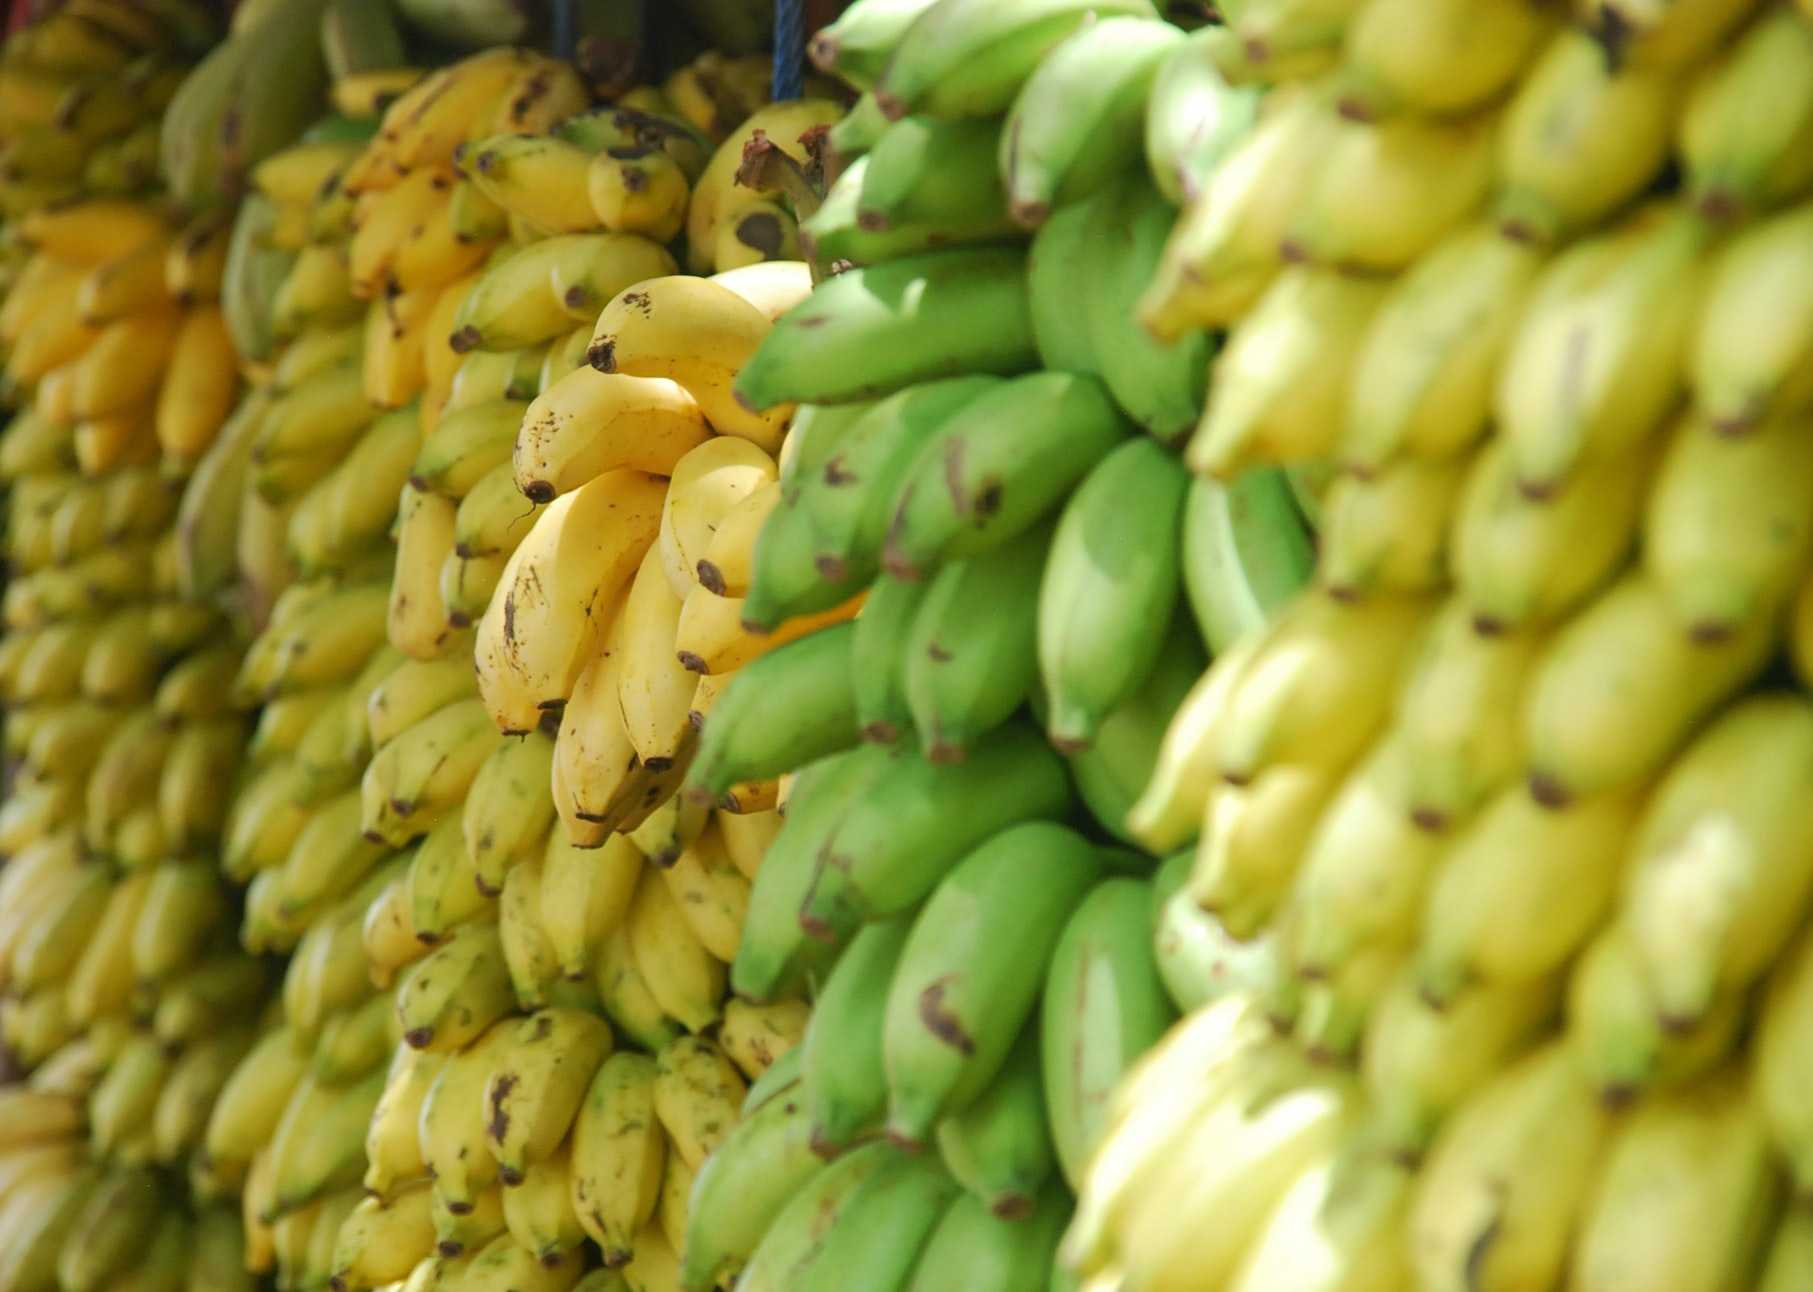 closeup photo of bunch of bananas